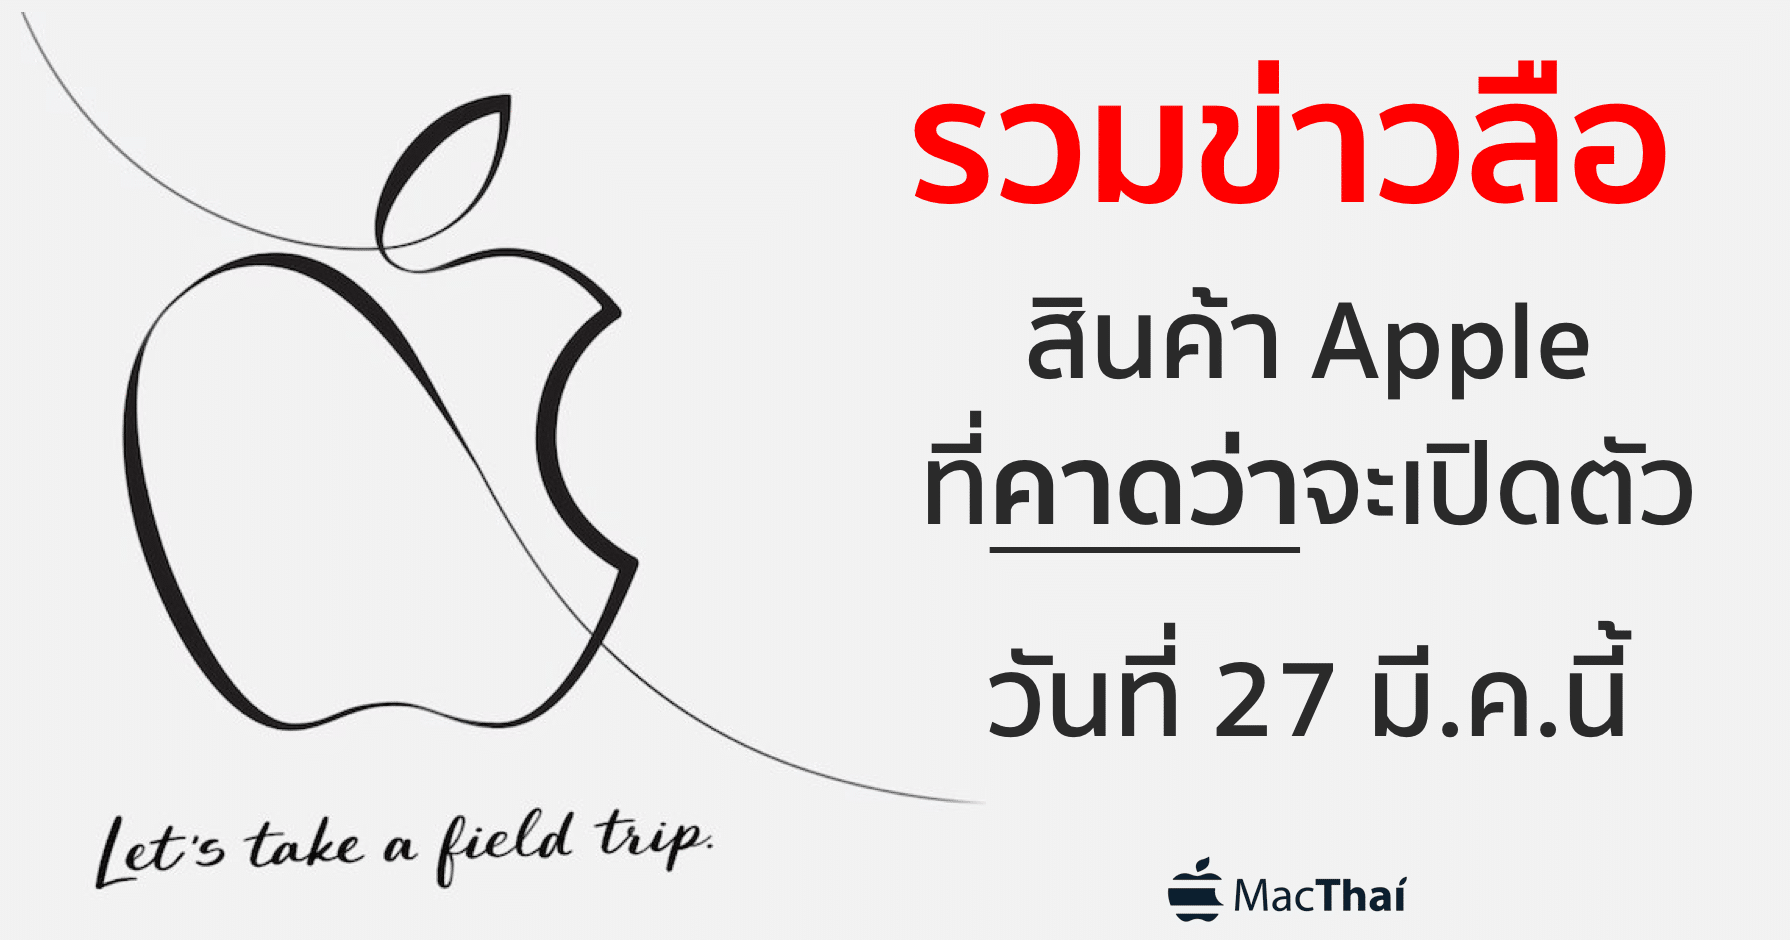 summary apple products will launch in 27 march 2018-12